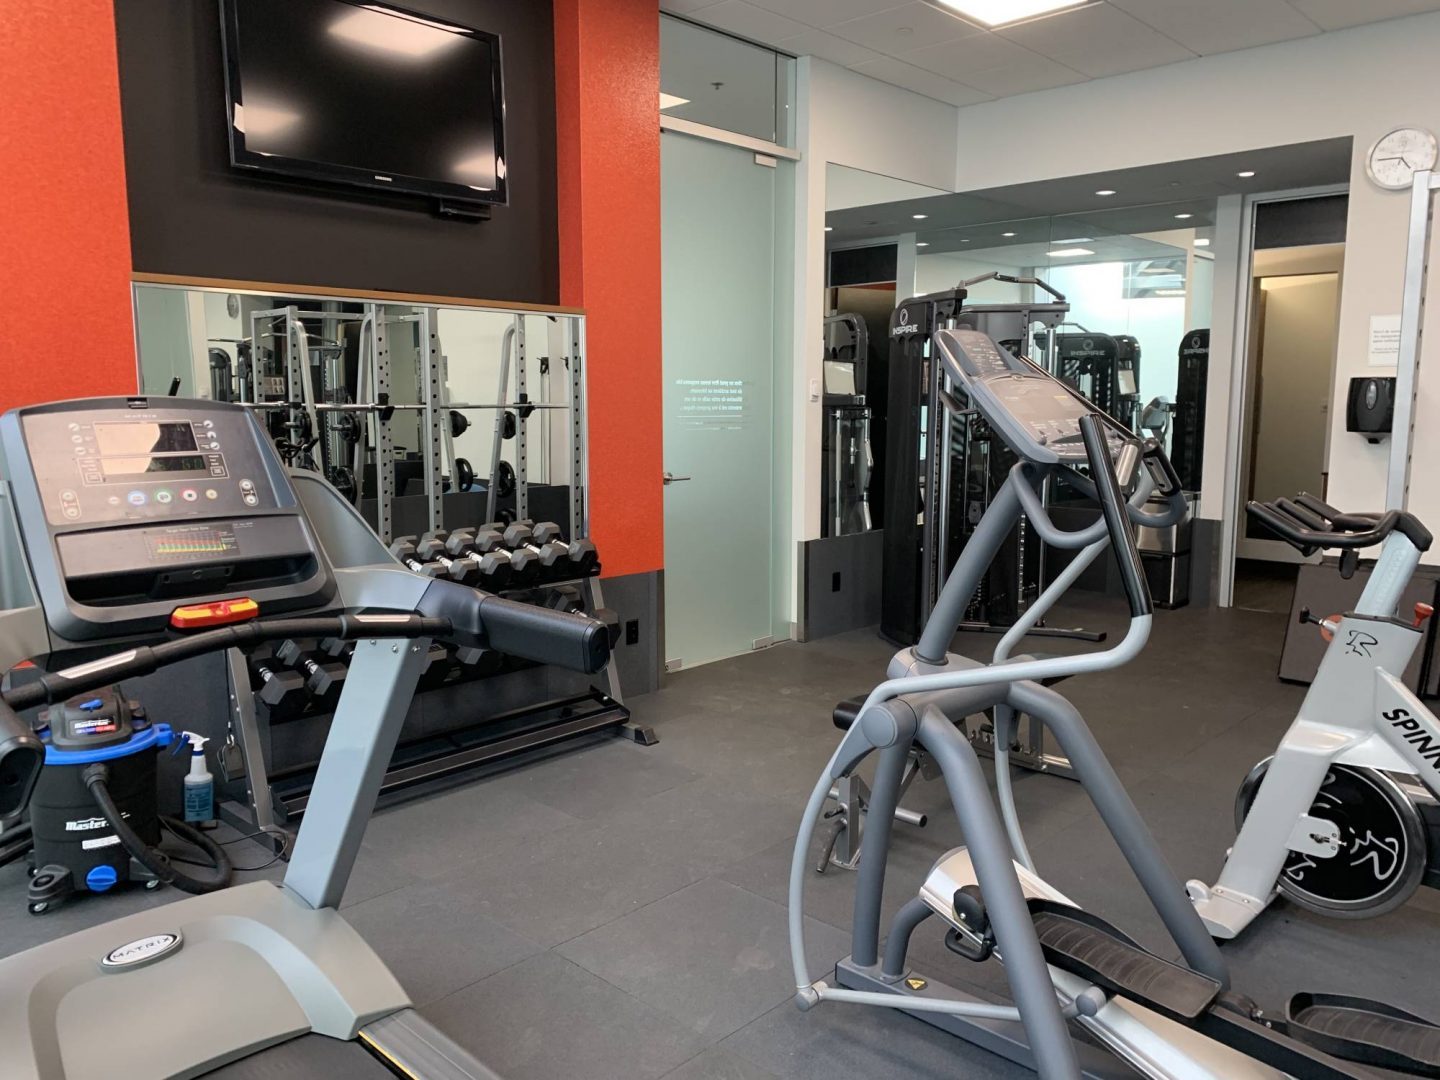 Gym room of Mercedes-Benz Rive-Sud.